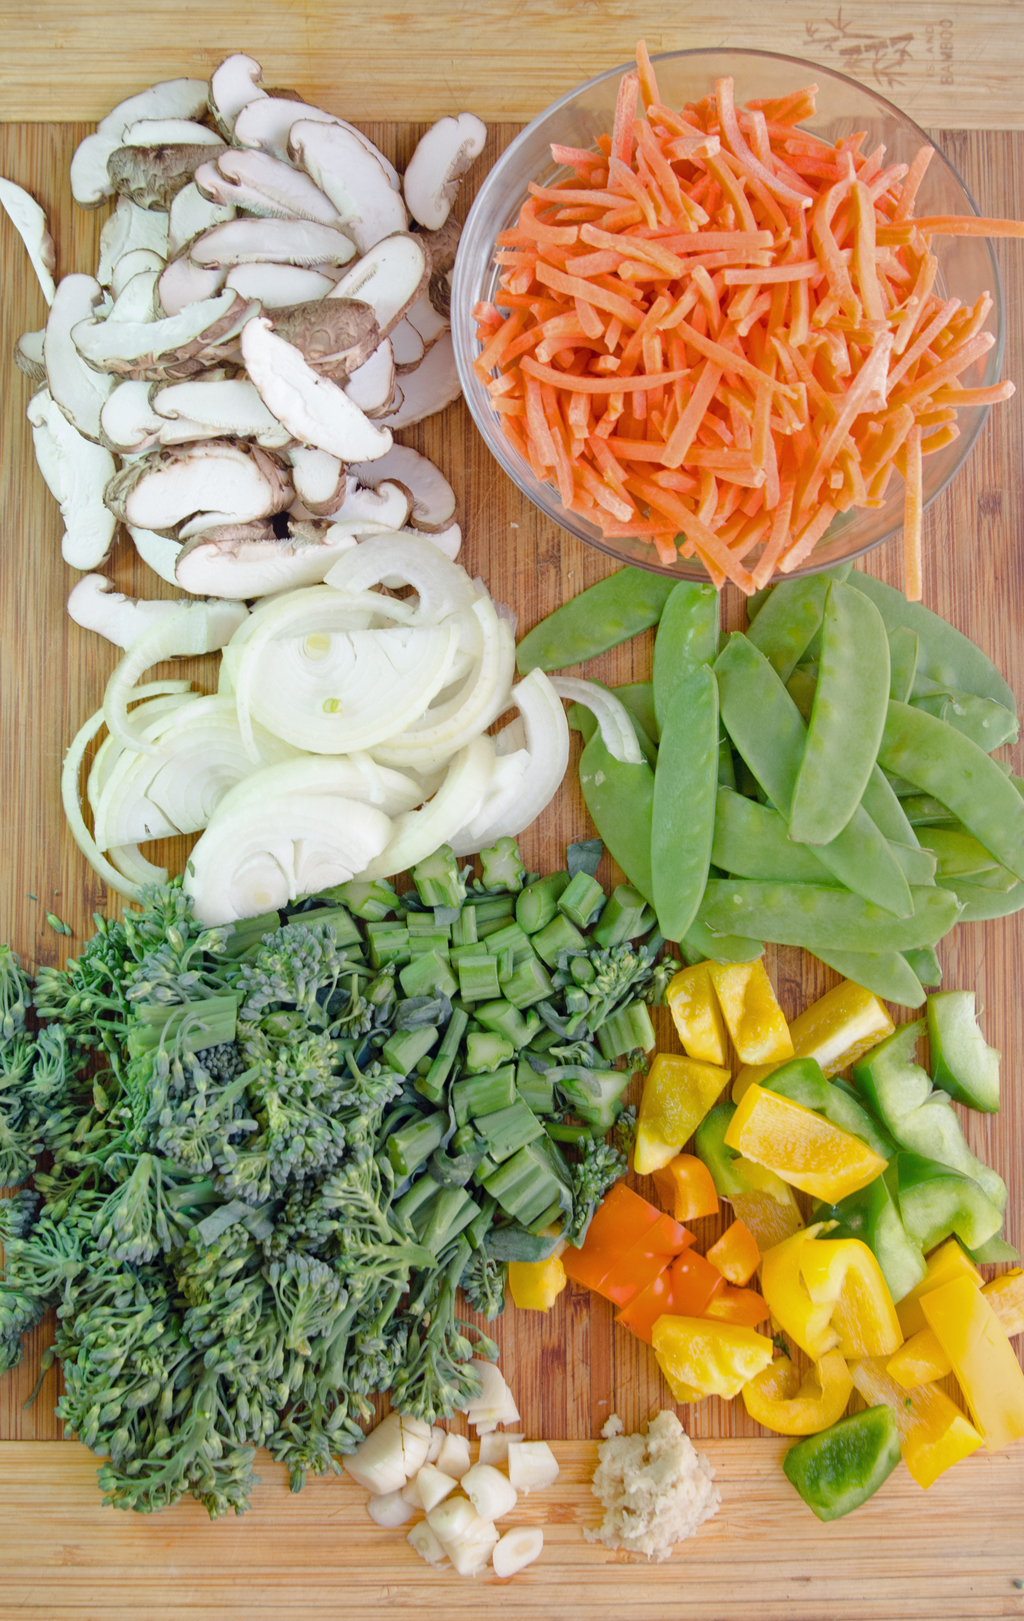 Ingredients Vegetable Stir-fry